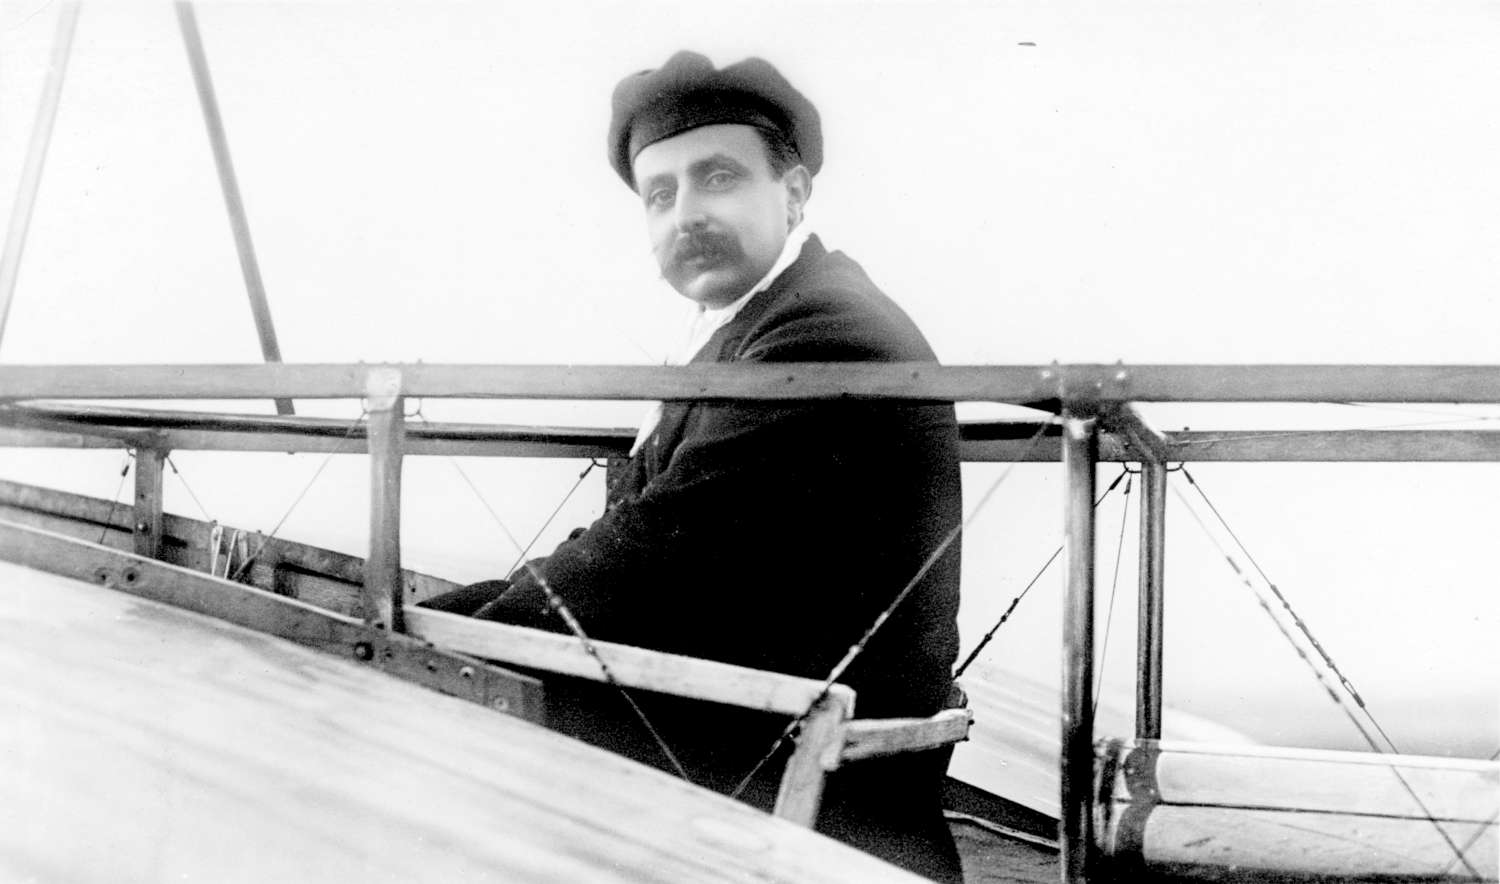 low_1900-1925 - Louis Bleriot in his monoplane-1500